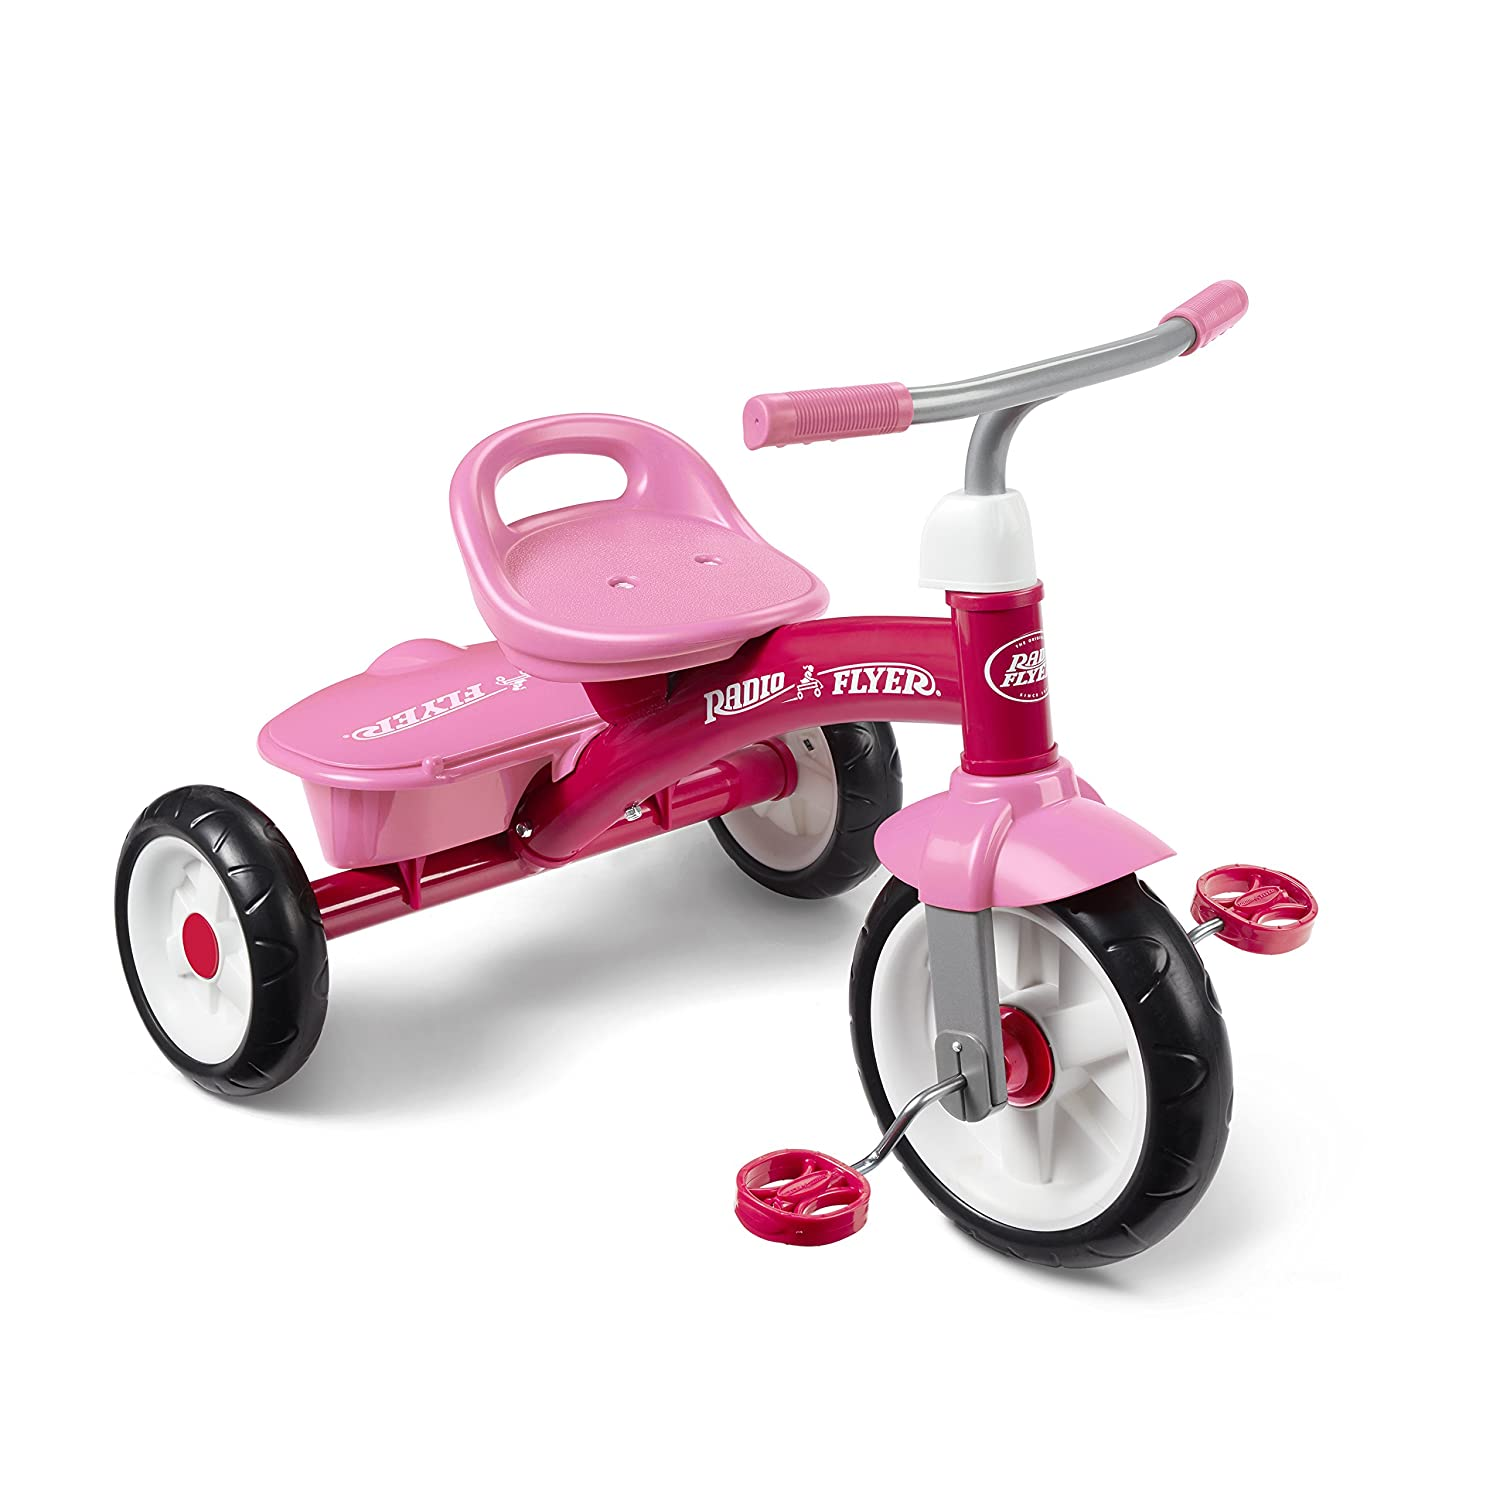 Radio Flyer Rider Trike Ride On, Pink (Amazon Exclusive)